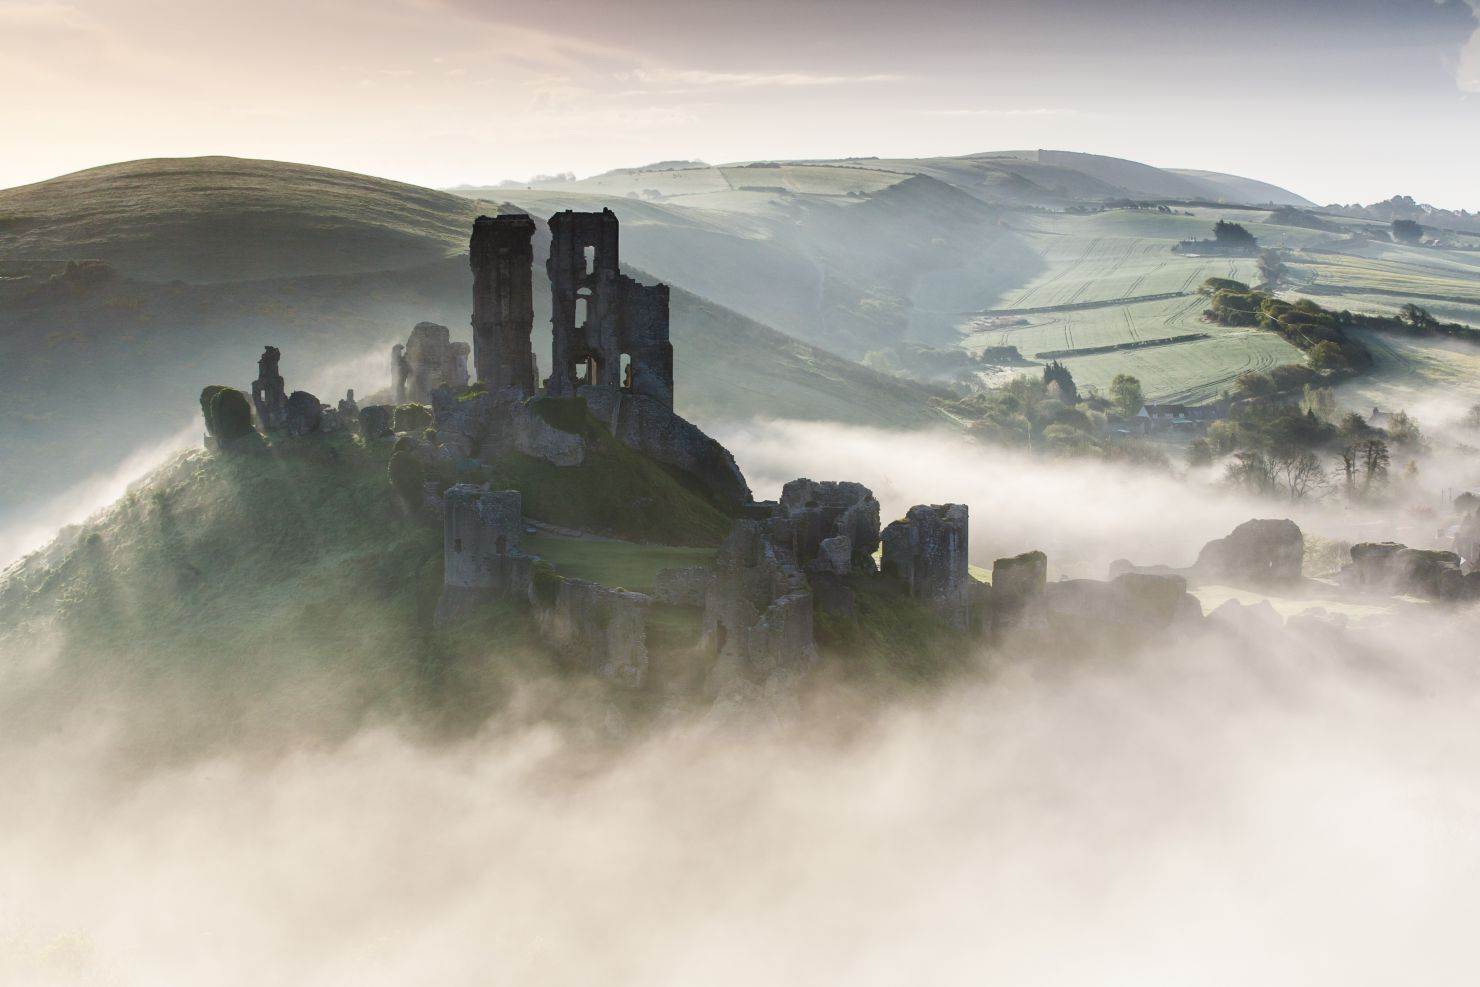 Ruins of Corfe Castle rising from above the fog